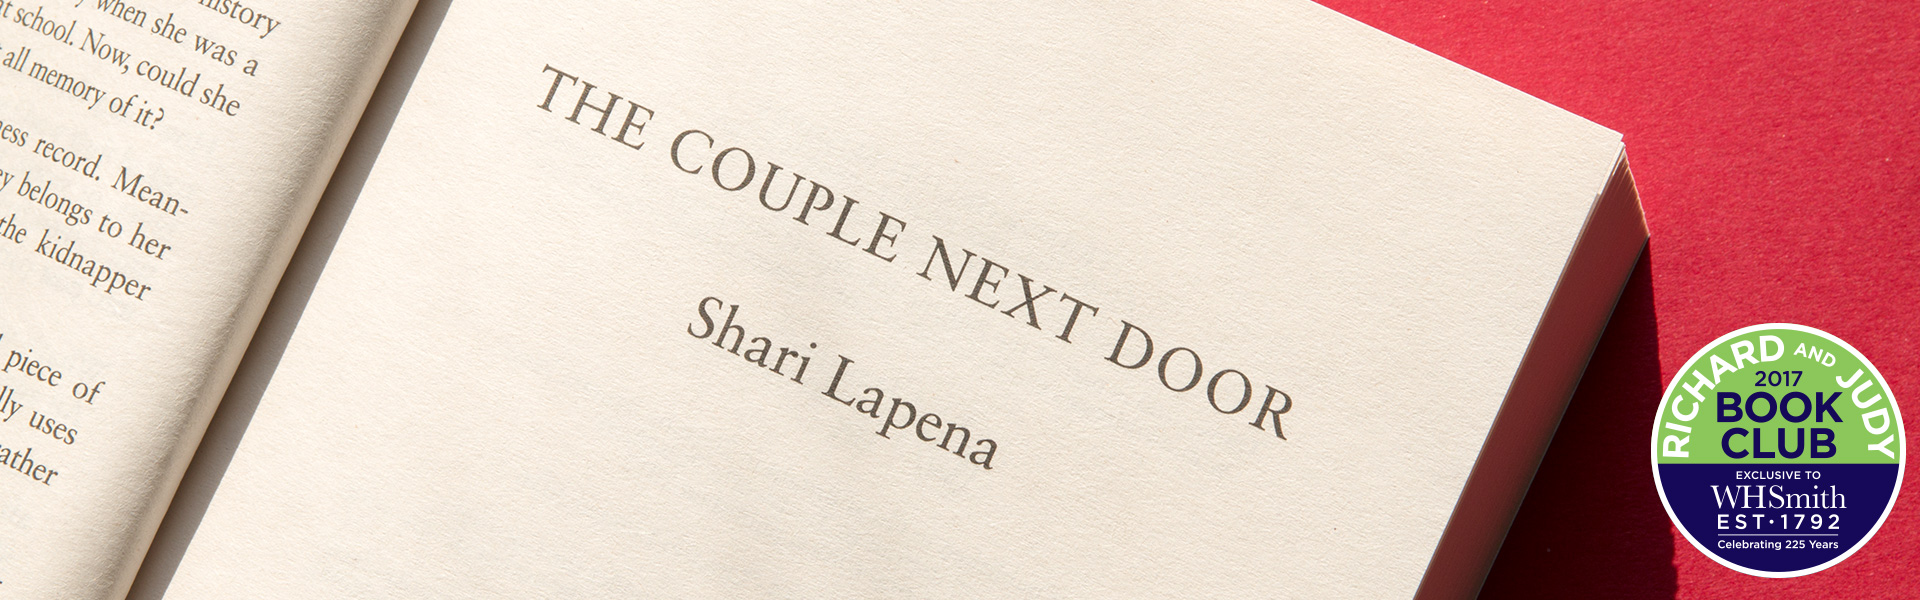 Read an Extract from The Couple Next Door by Shari Lapena